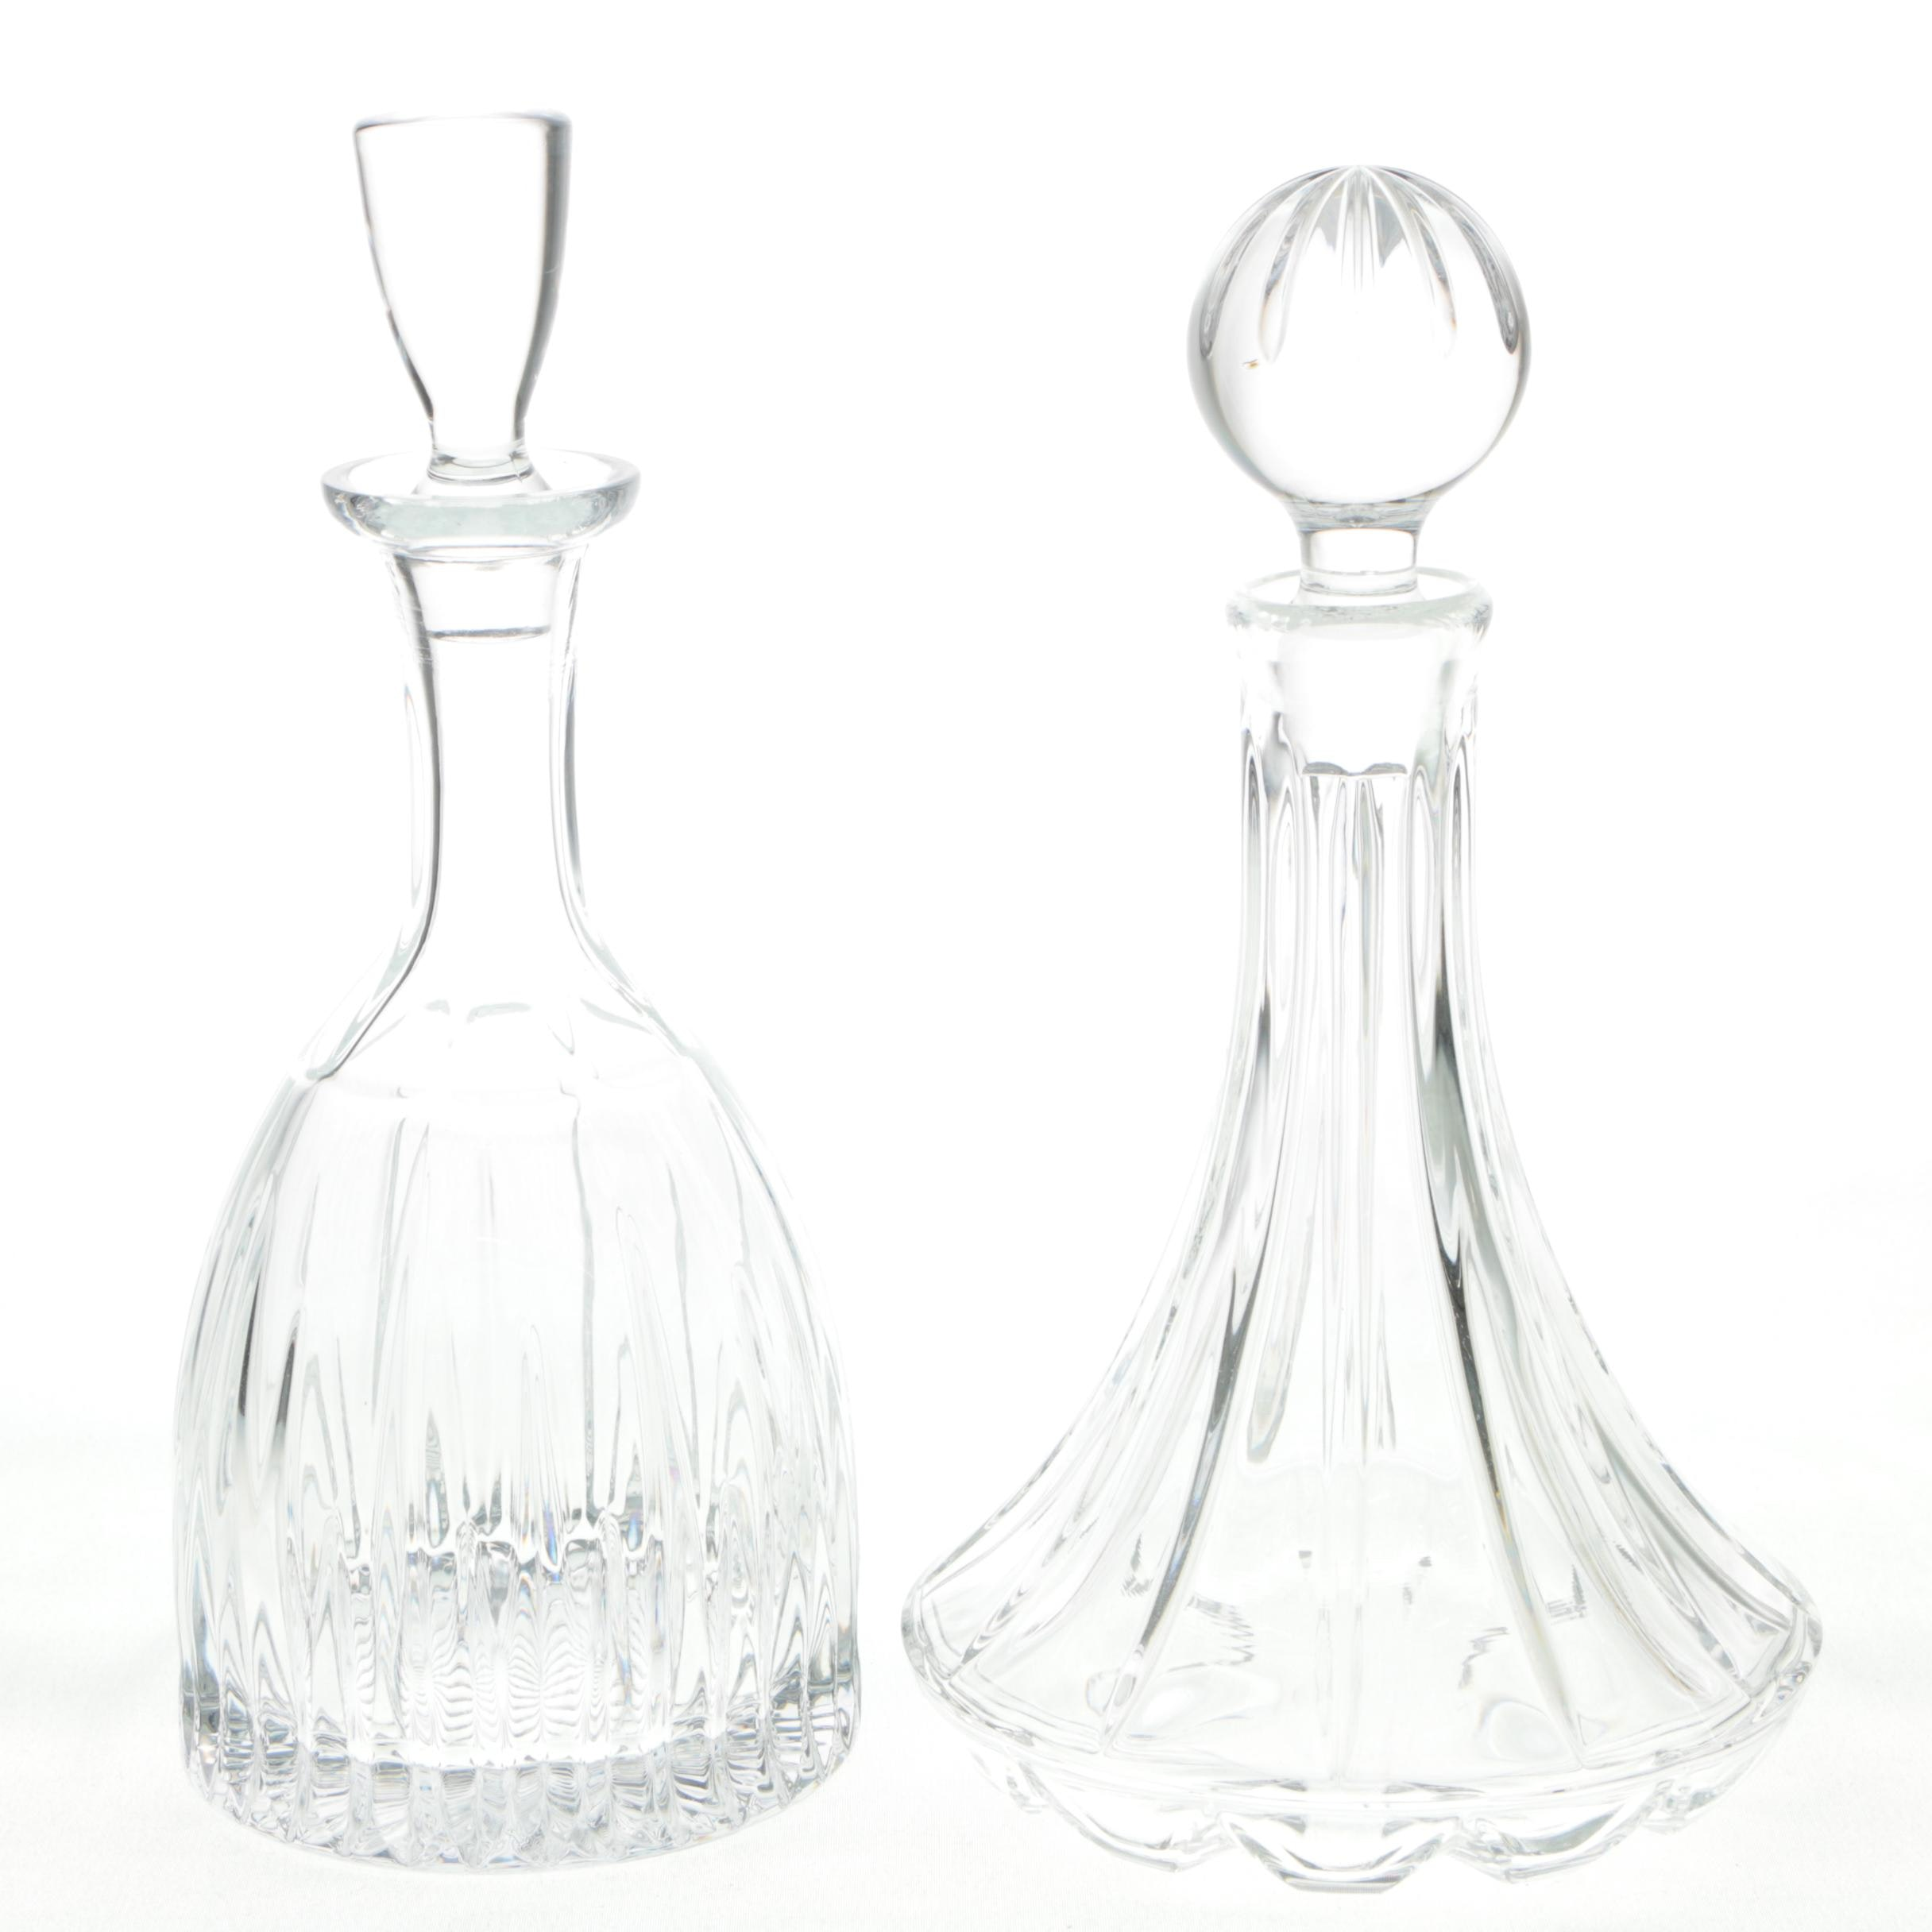 Pairing of Crystal Decanters